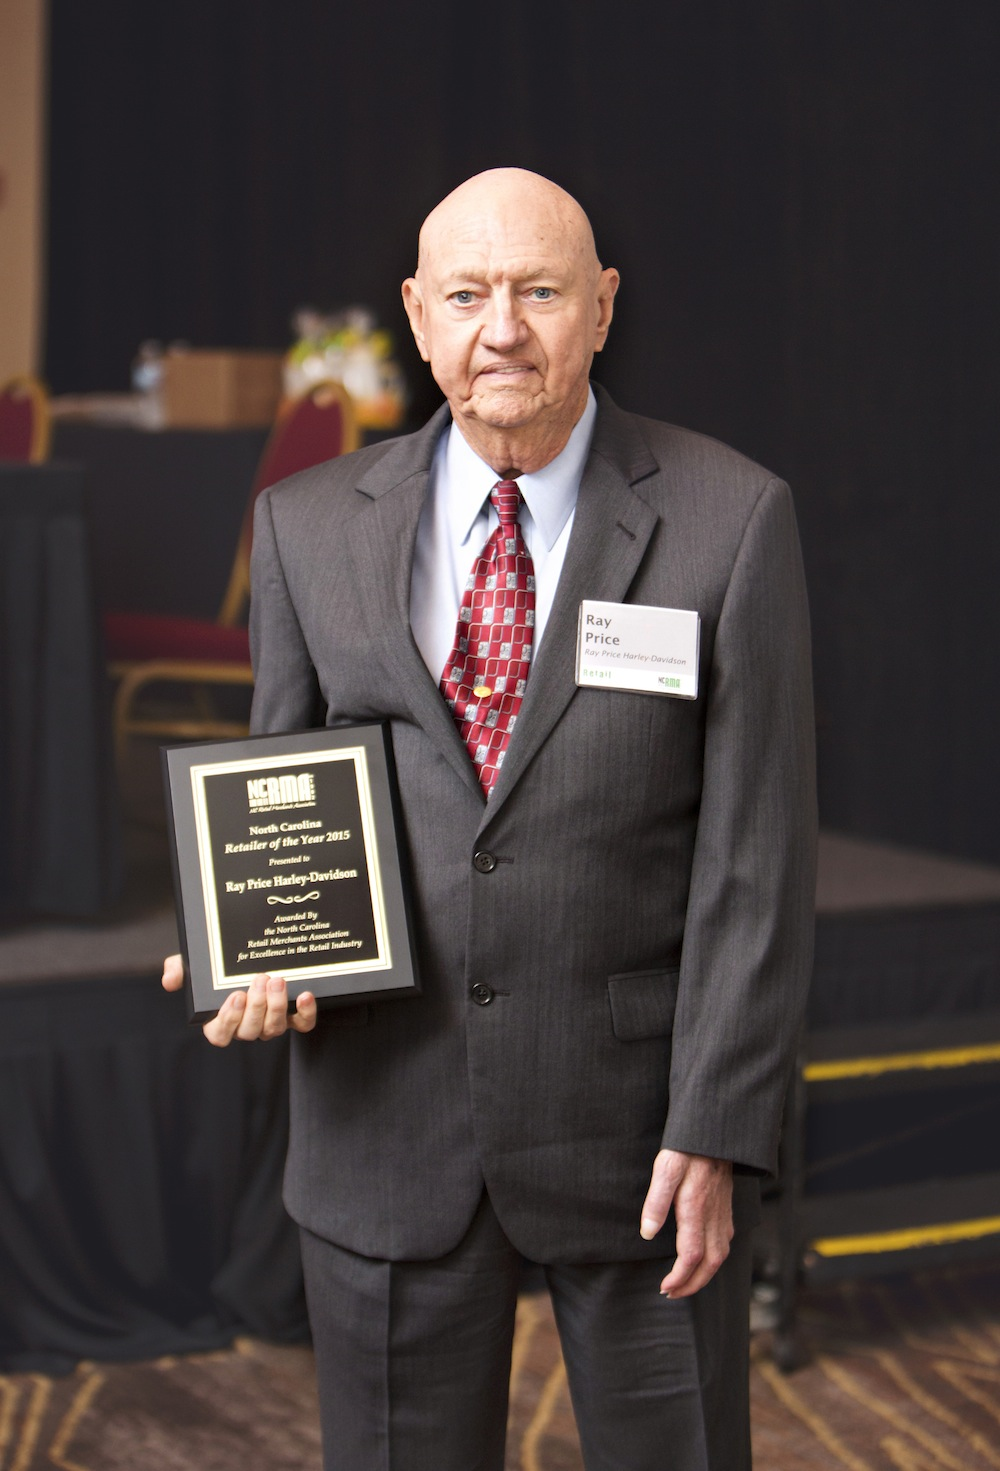 Ray Price of Ray Price Harley-Davidson with the award for 2015 Retailer of the Year from the N.C. Retail Merchants Association.